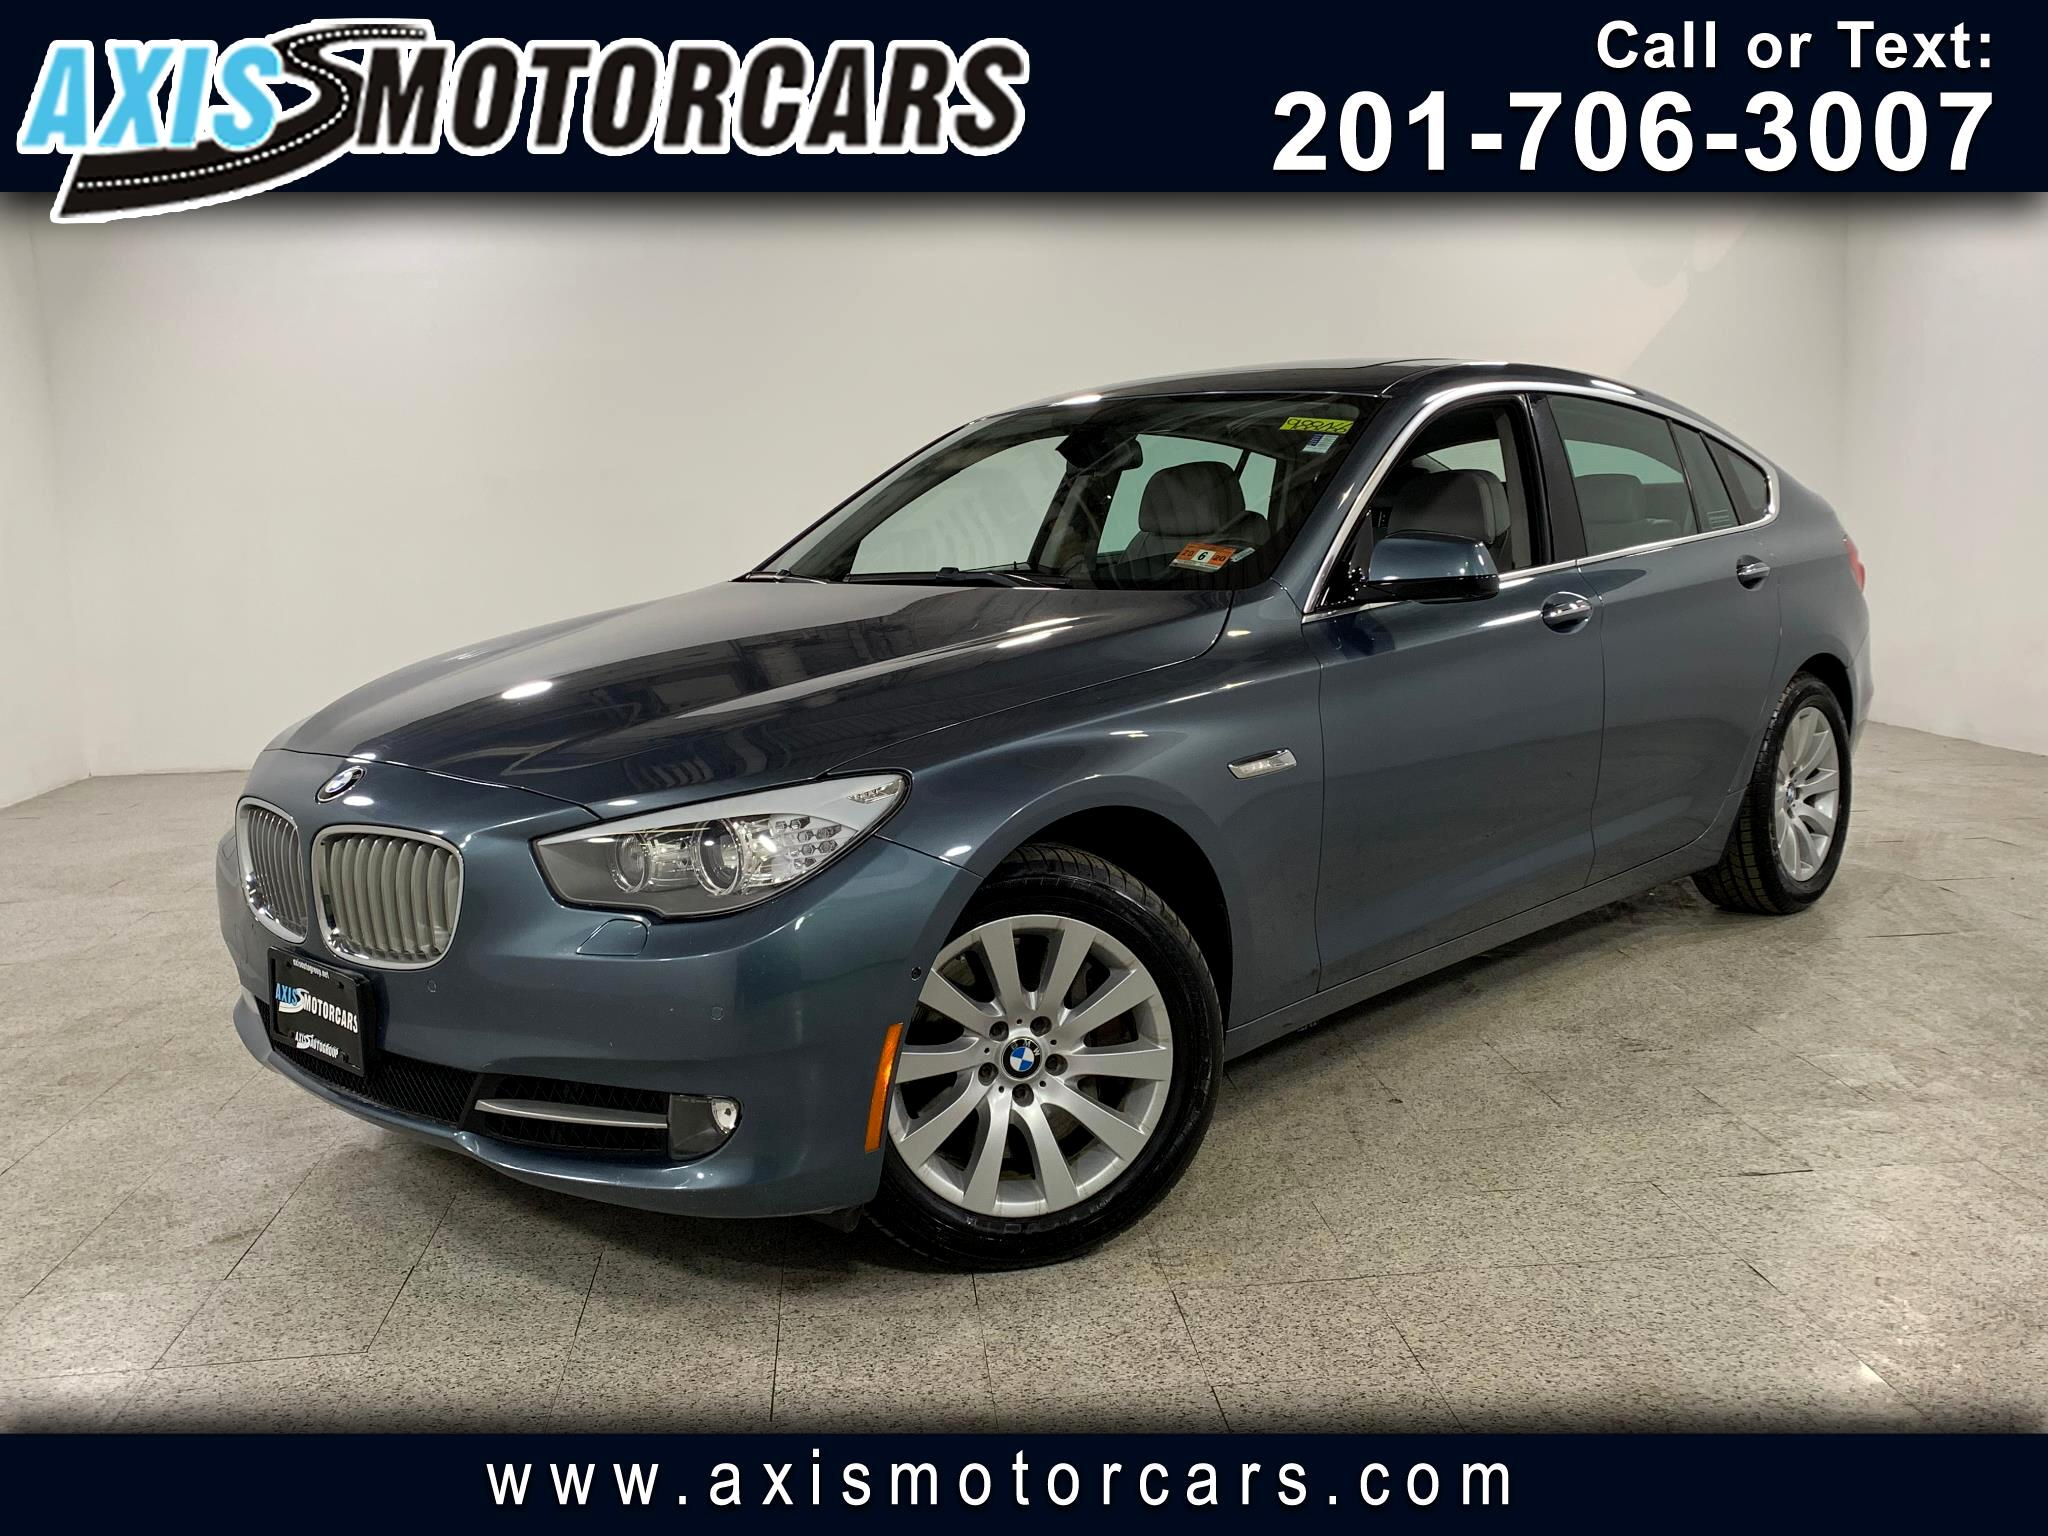 2013 BMW 550i Gran Turismo w/PanoramicRoof Navigation Bakup Camera